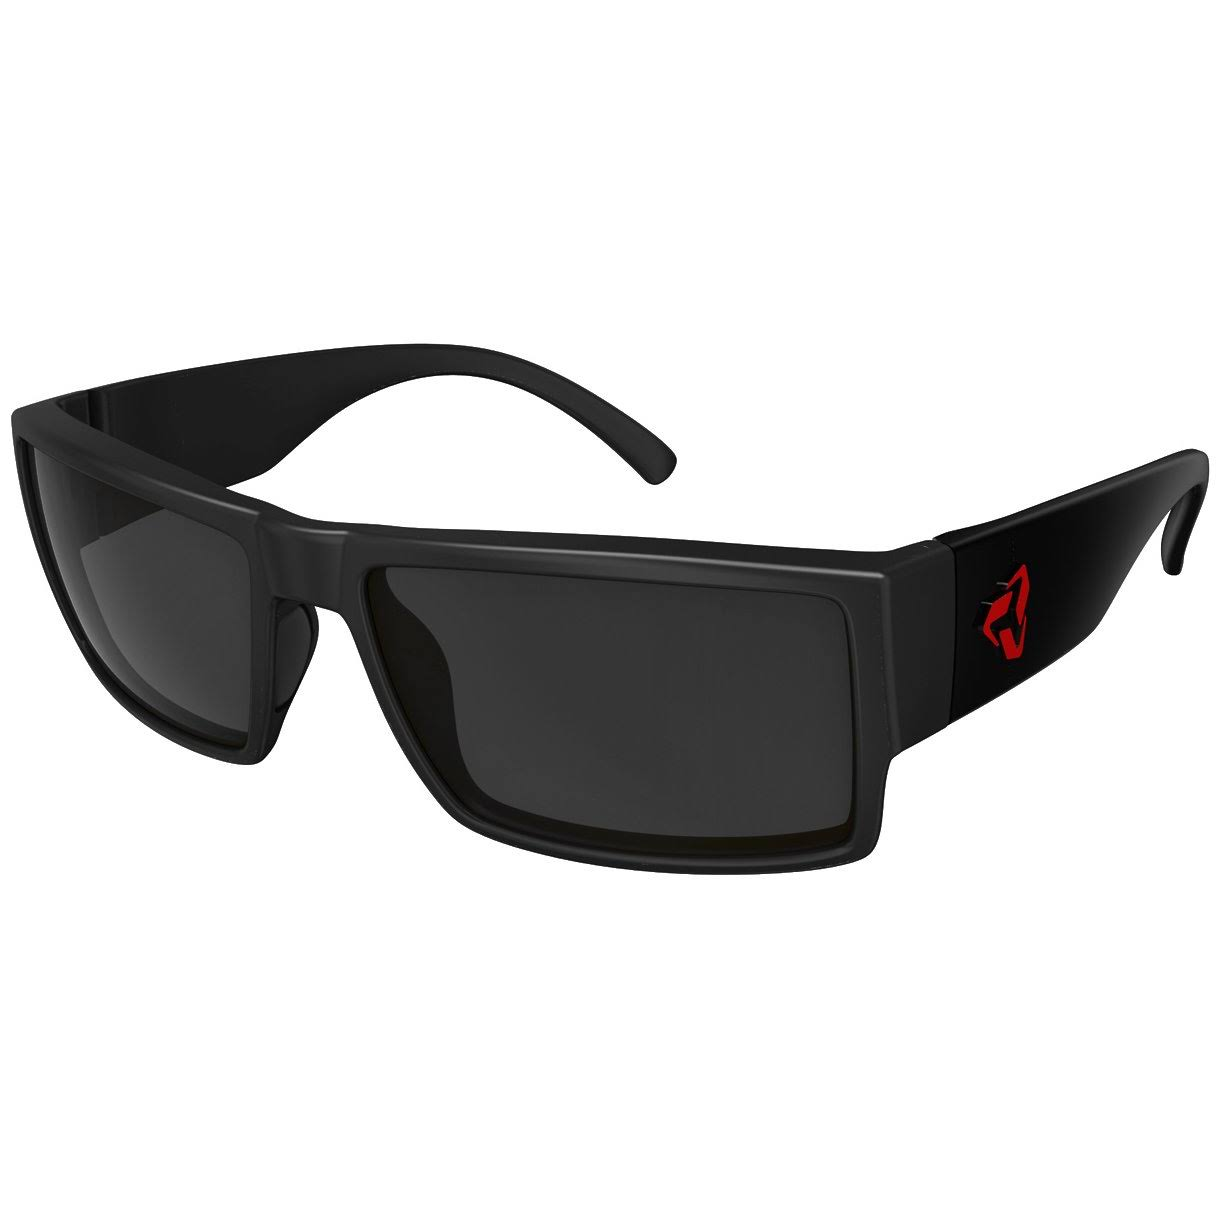 Ryders Eyewear Chops Standard Sunglasses - Matte Black